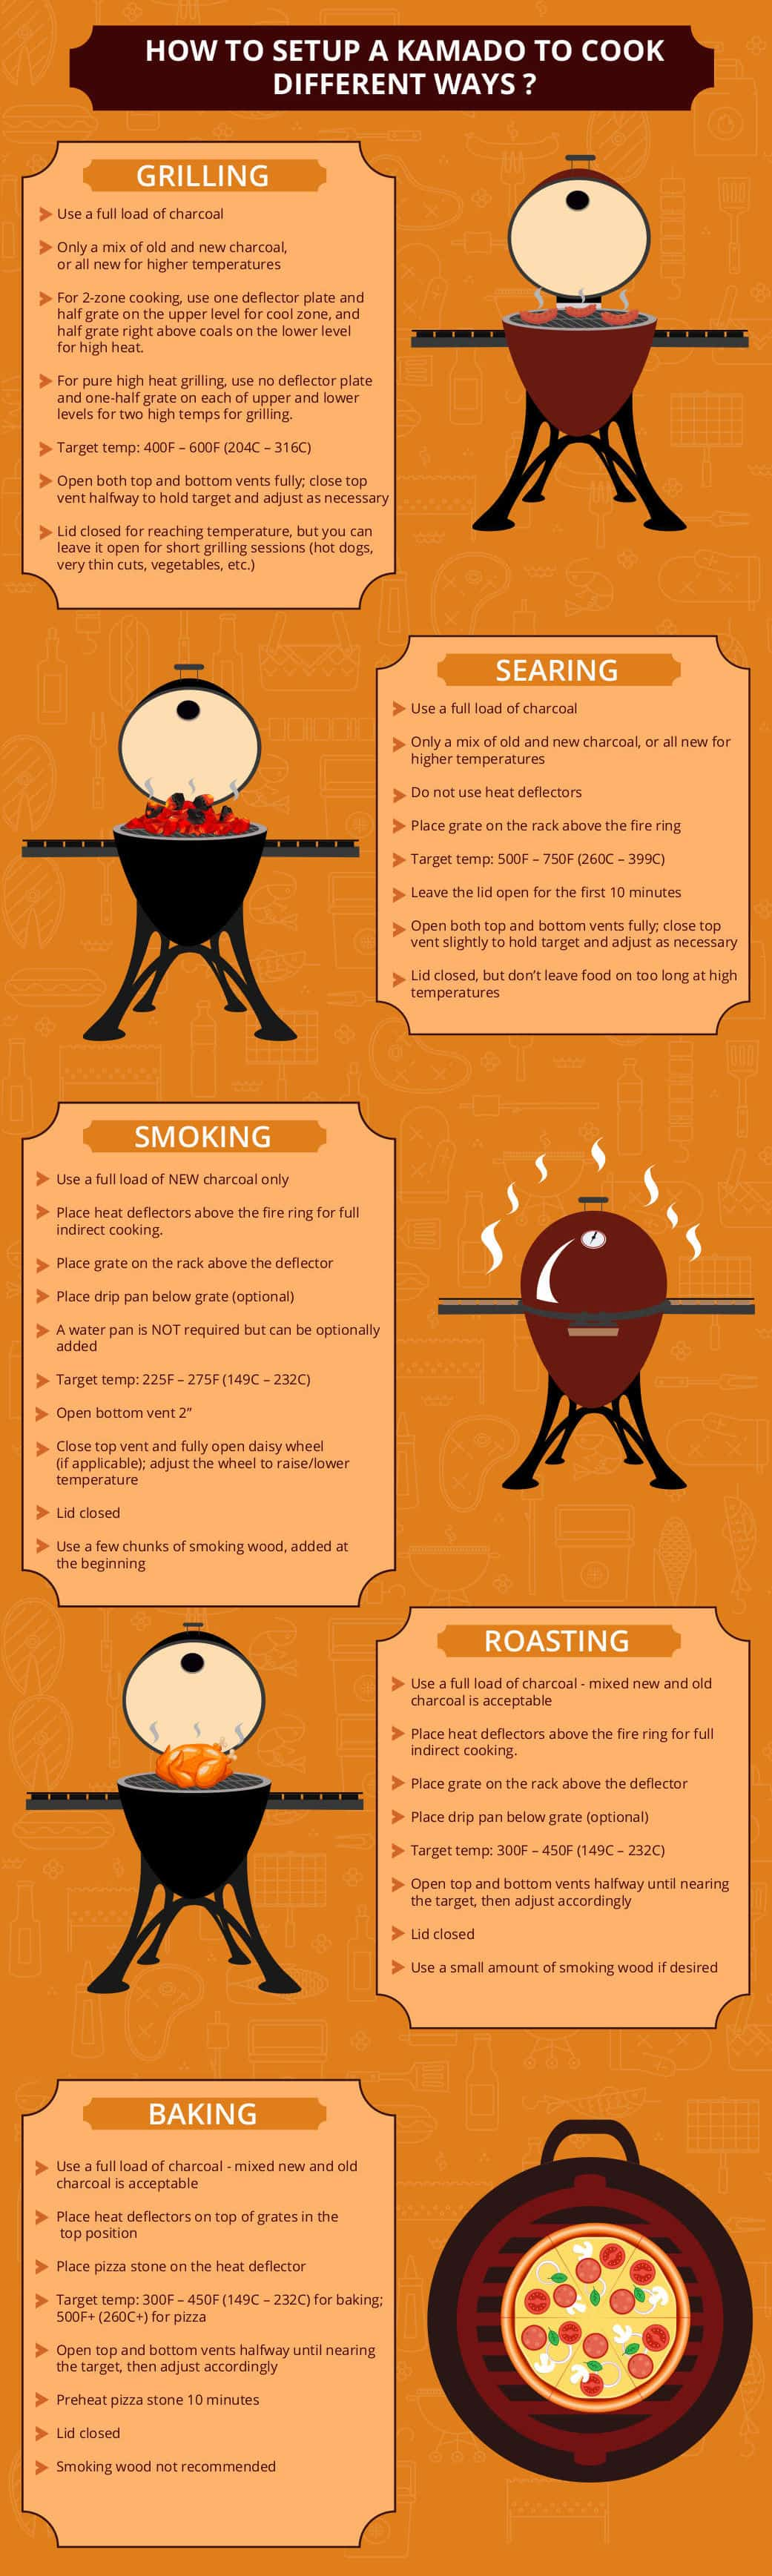 Graphic of different ways to cook on a kamado